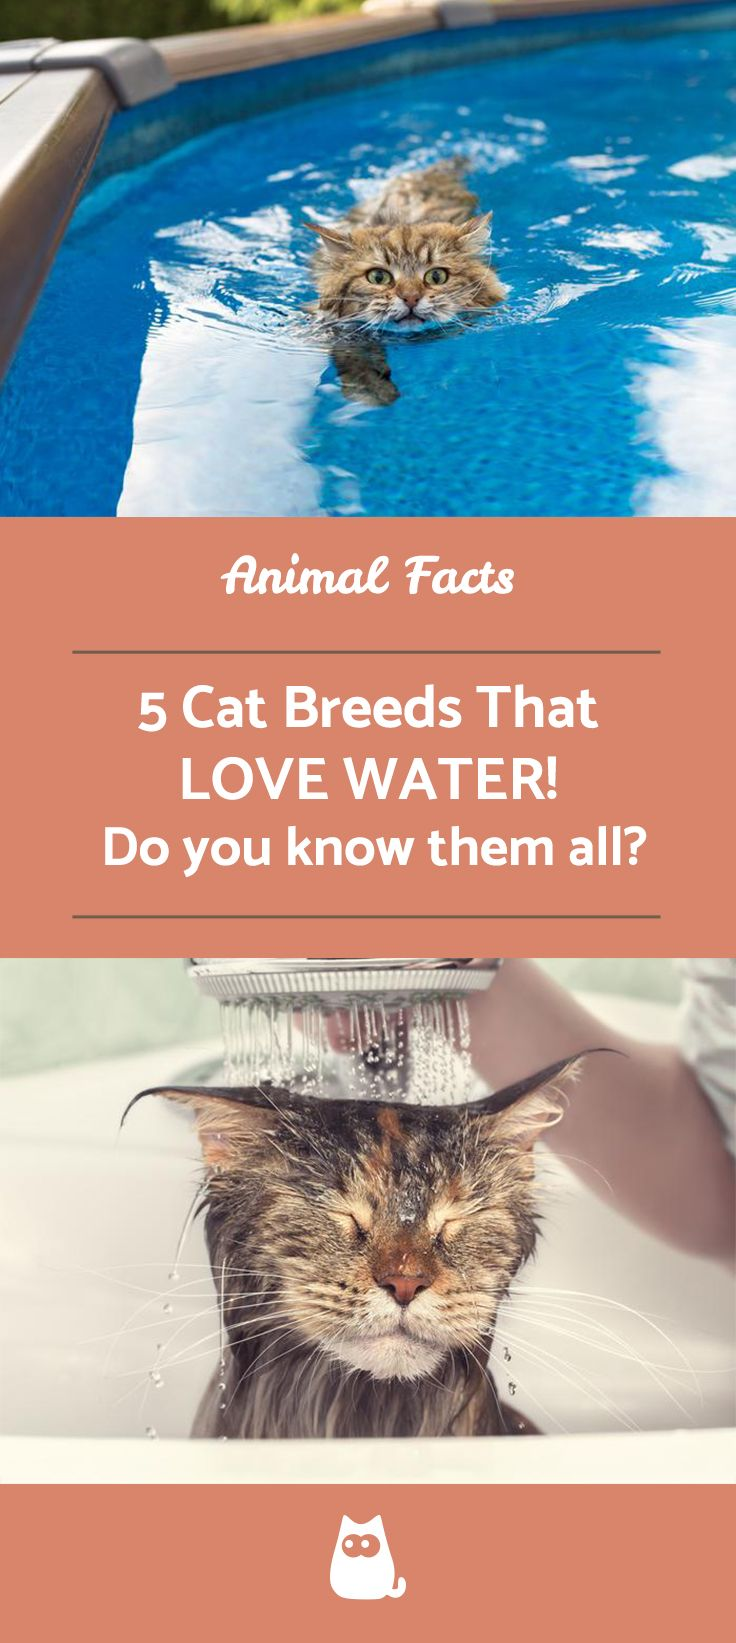 Cat Breeds That Like Water (con imágenes)